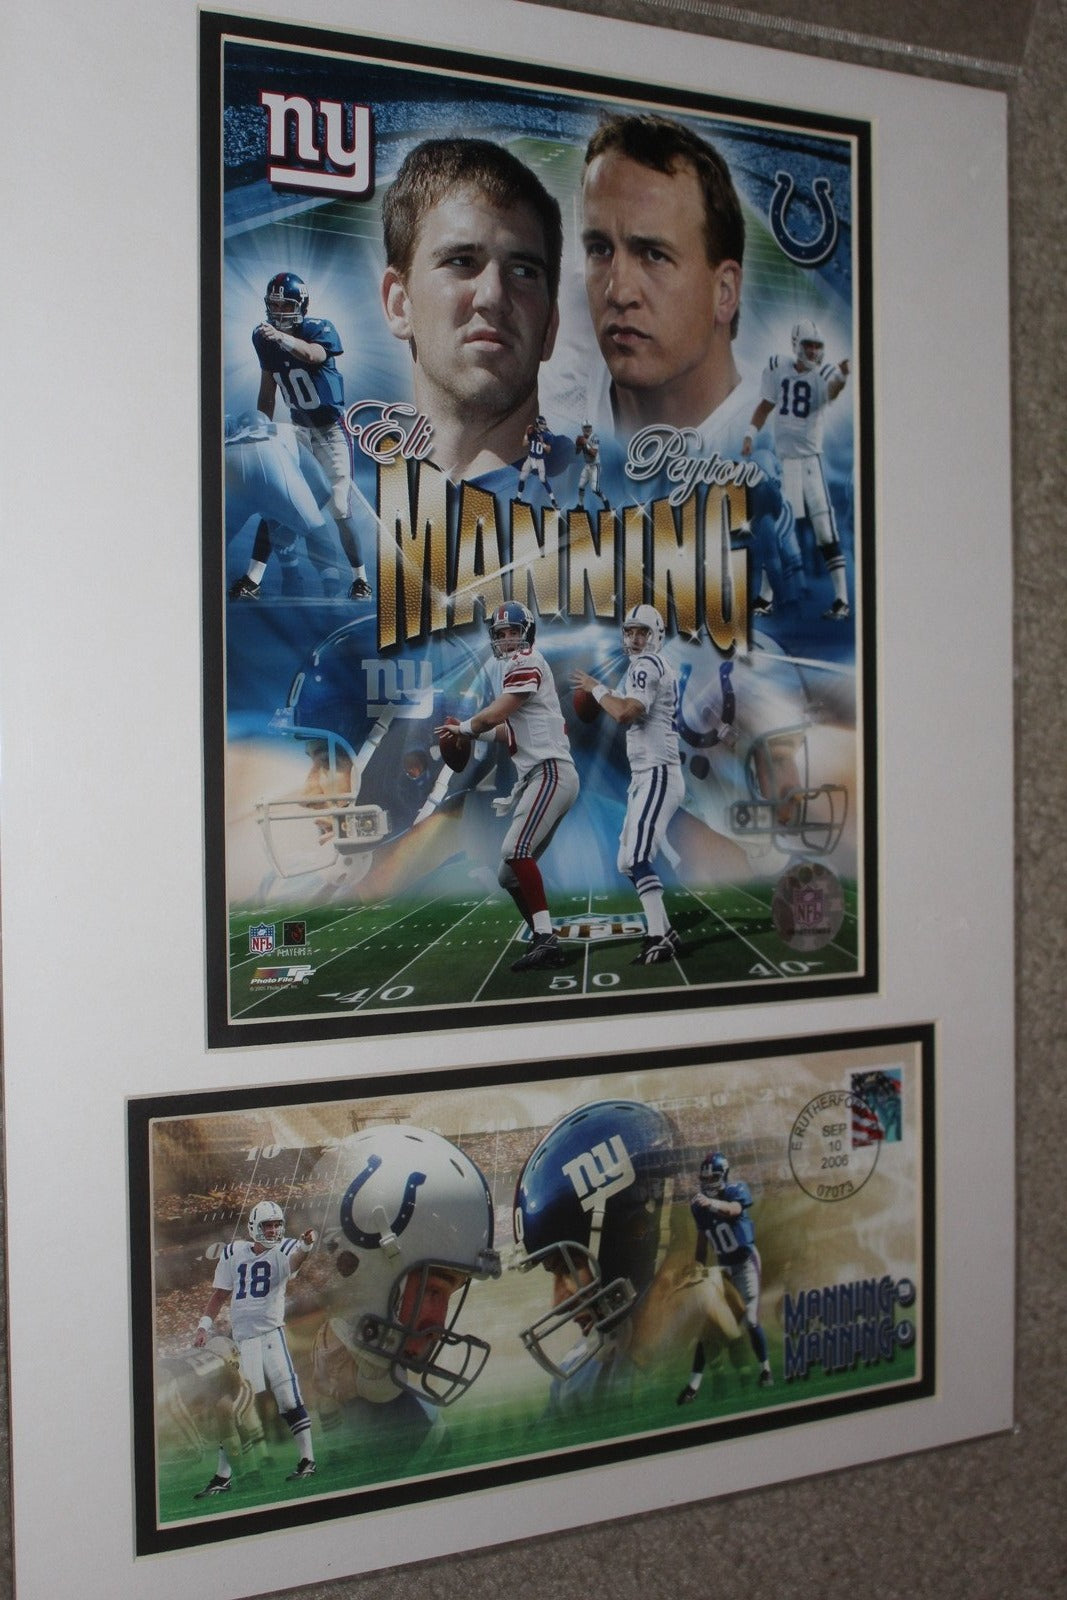 Sept 10, 2006 Eli & Peyton Manning First Day Cover - Vintage Indy Sports